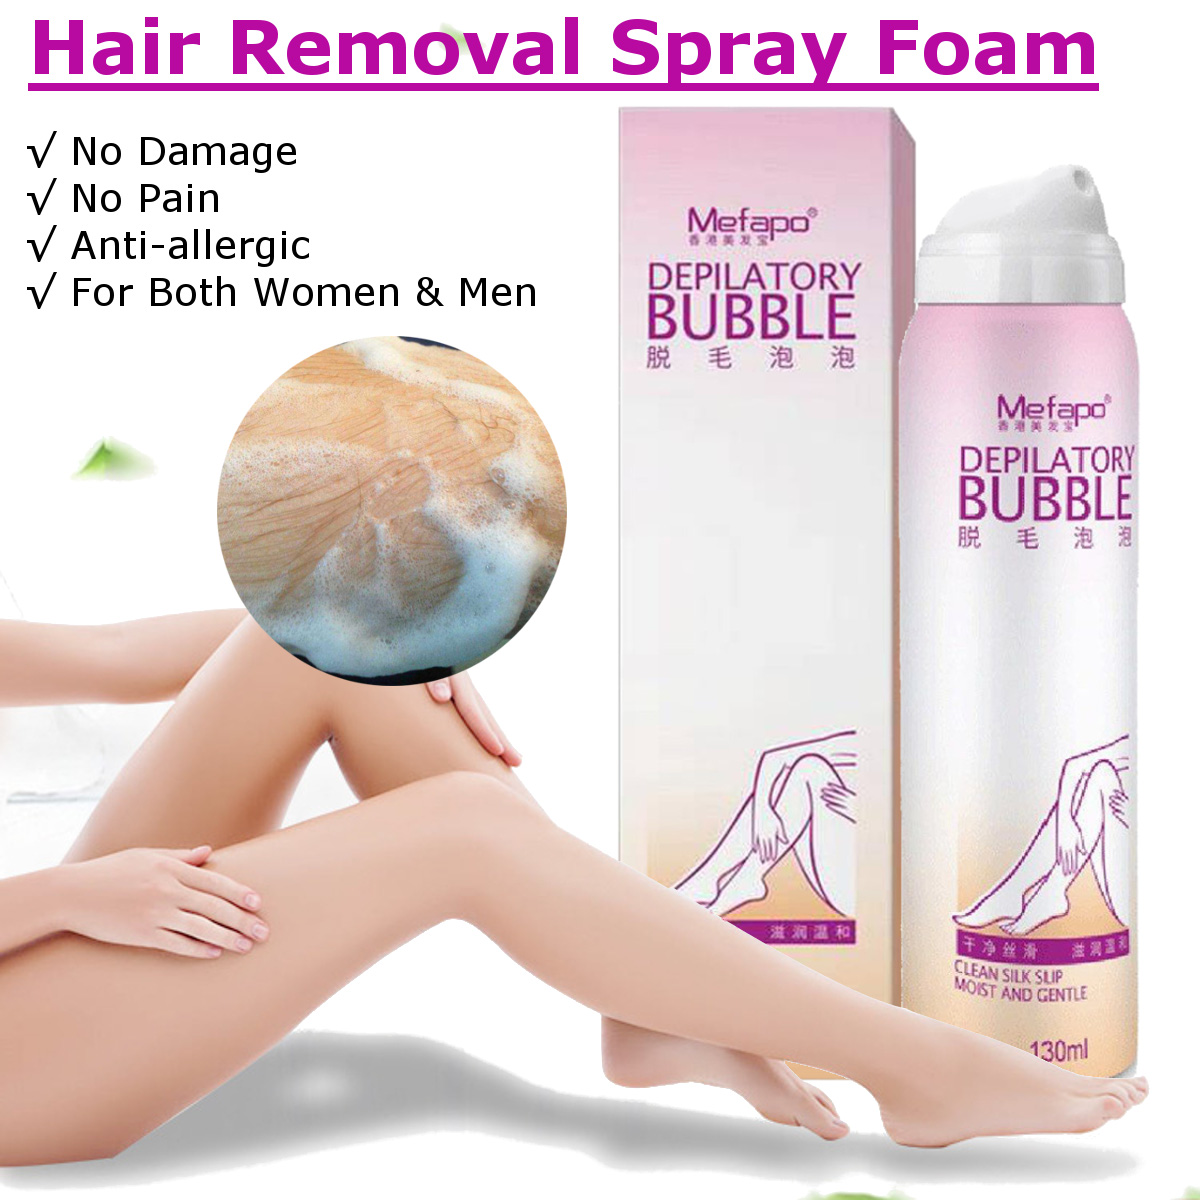 V Care Hair Removal Cream Price